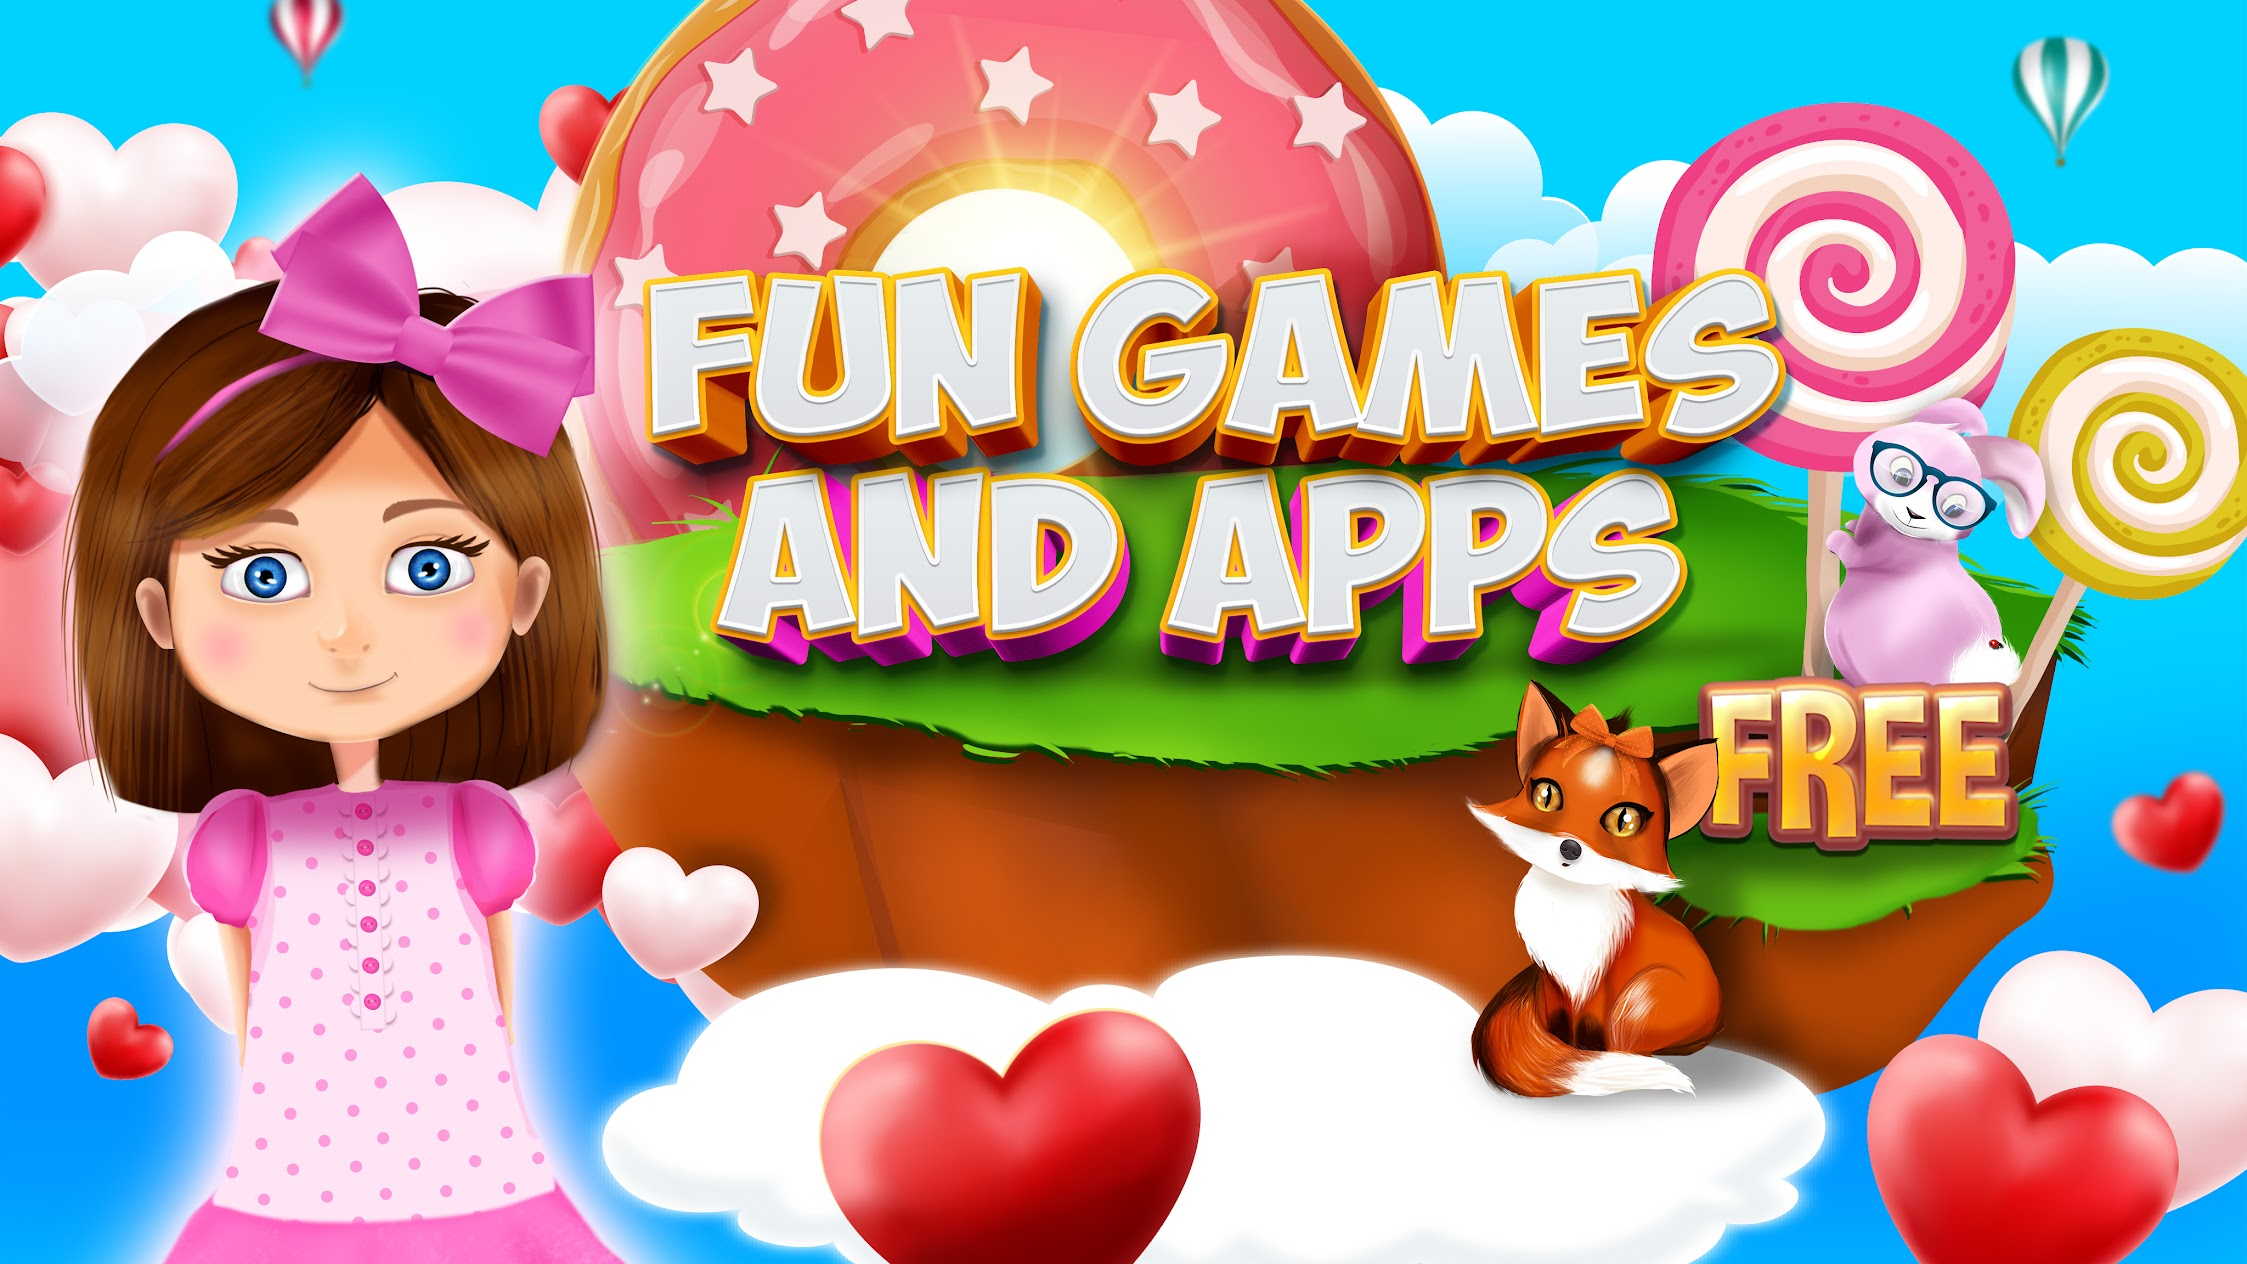 Fun Games and Apps Free